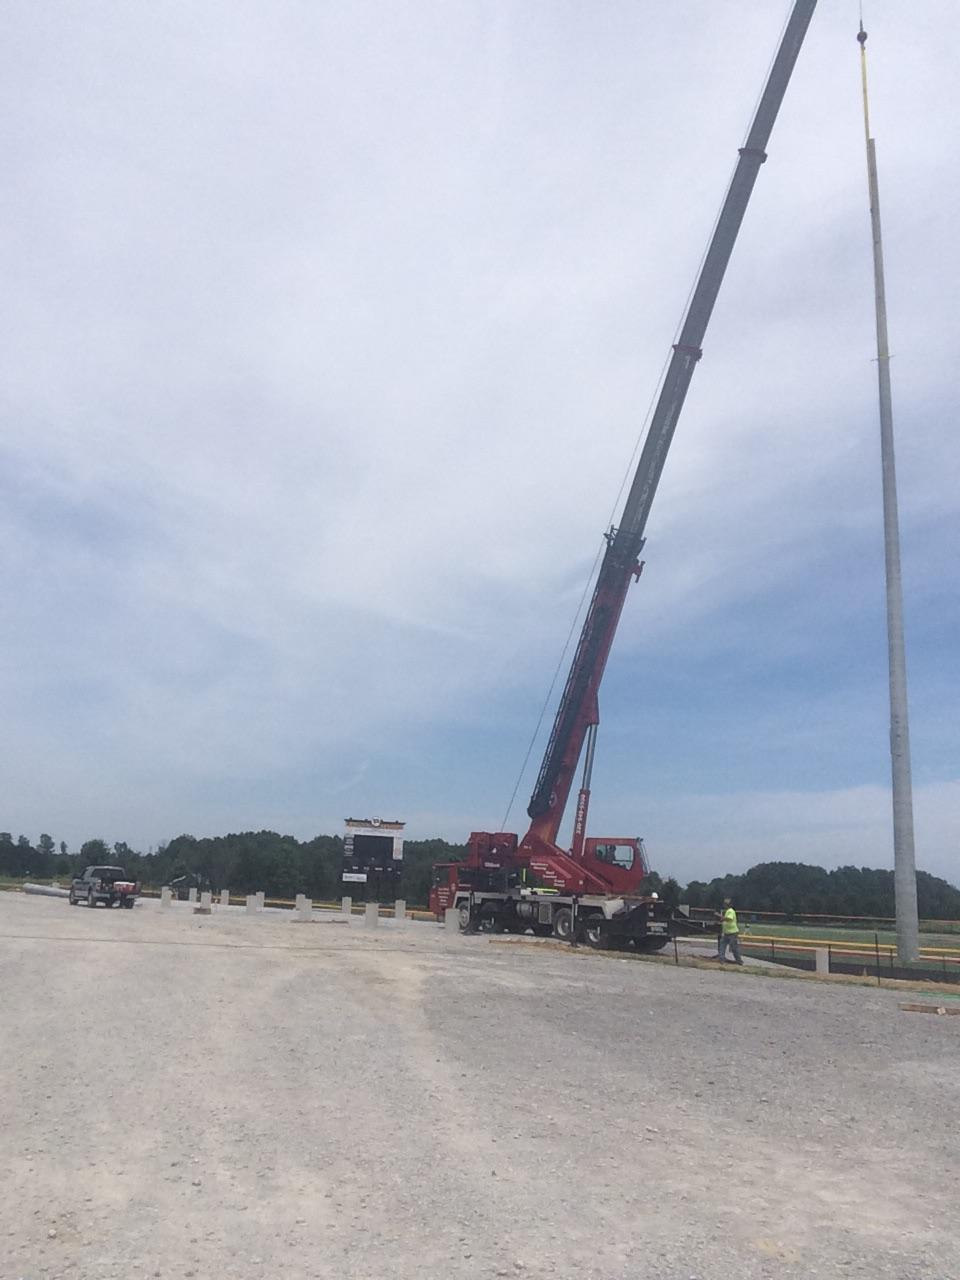 placing lite poles